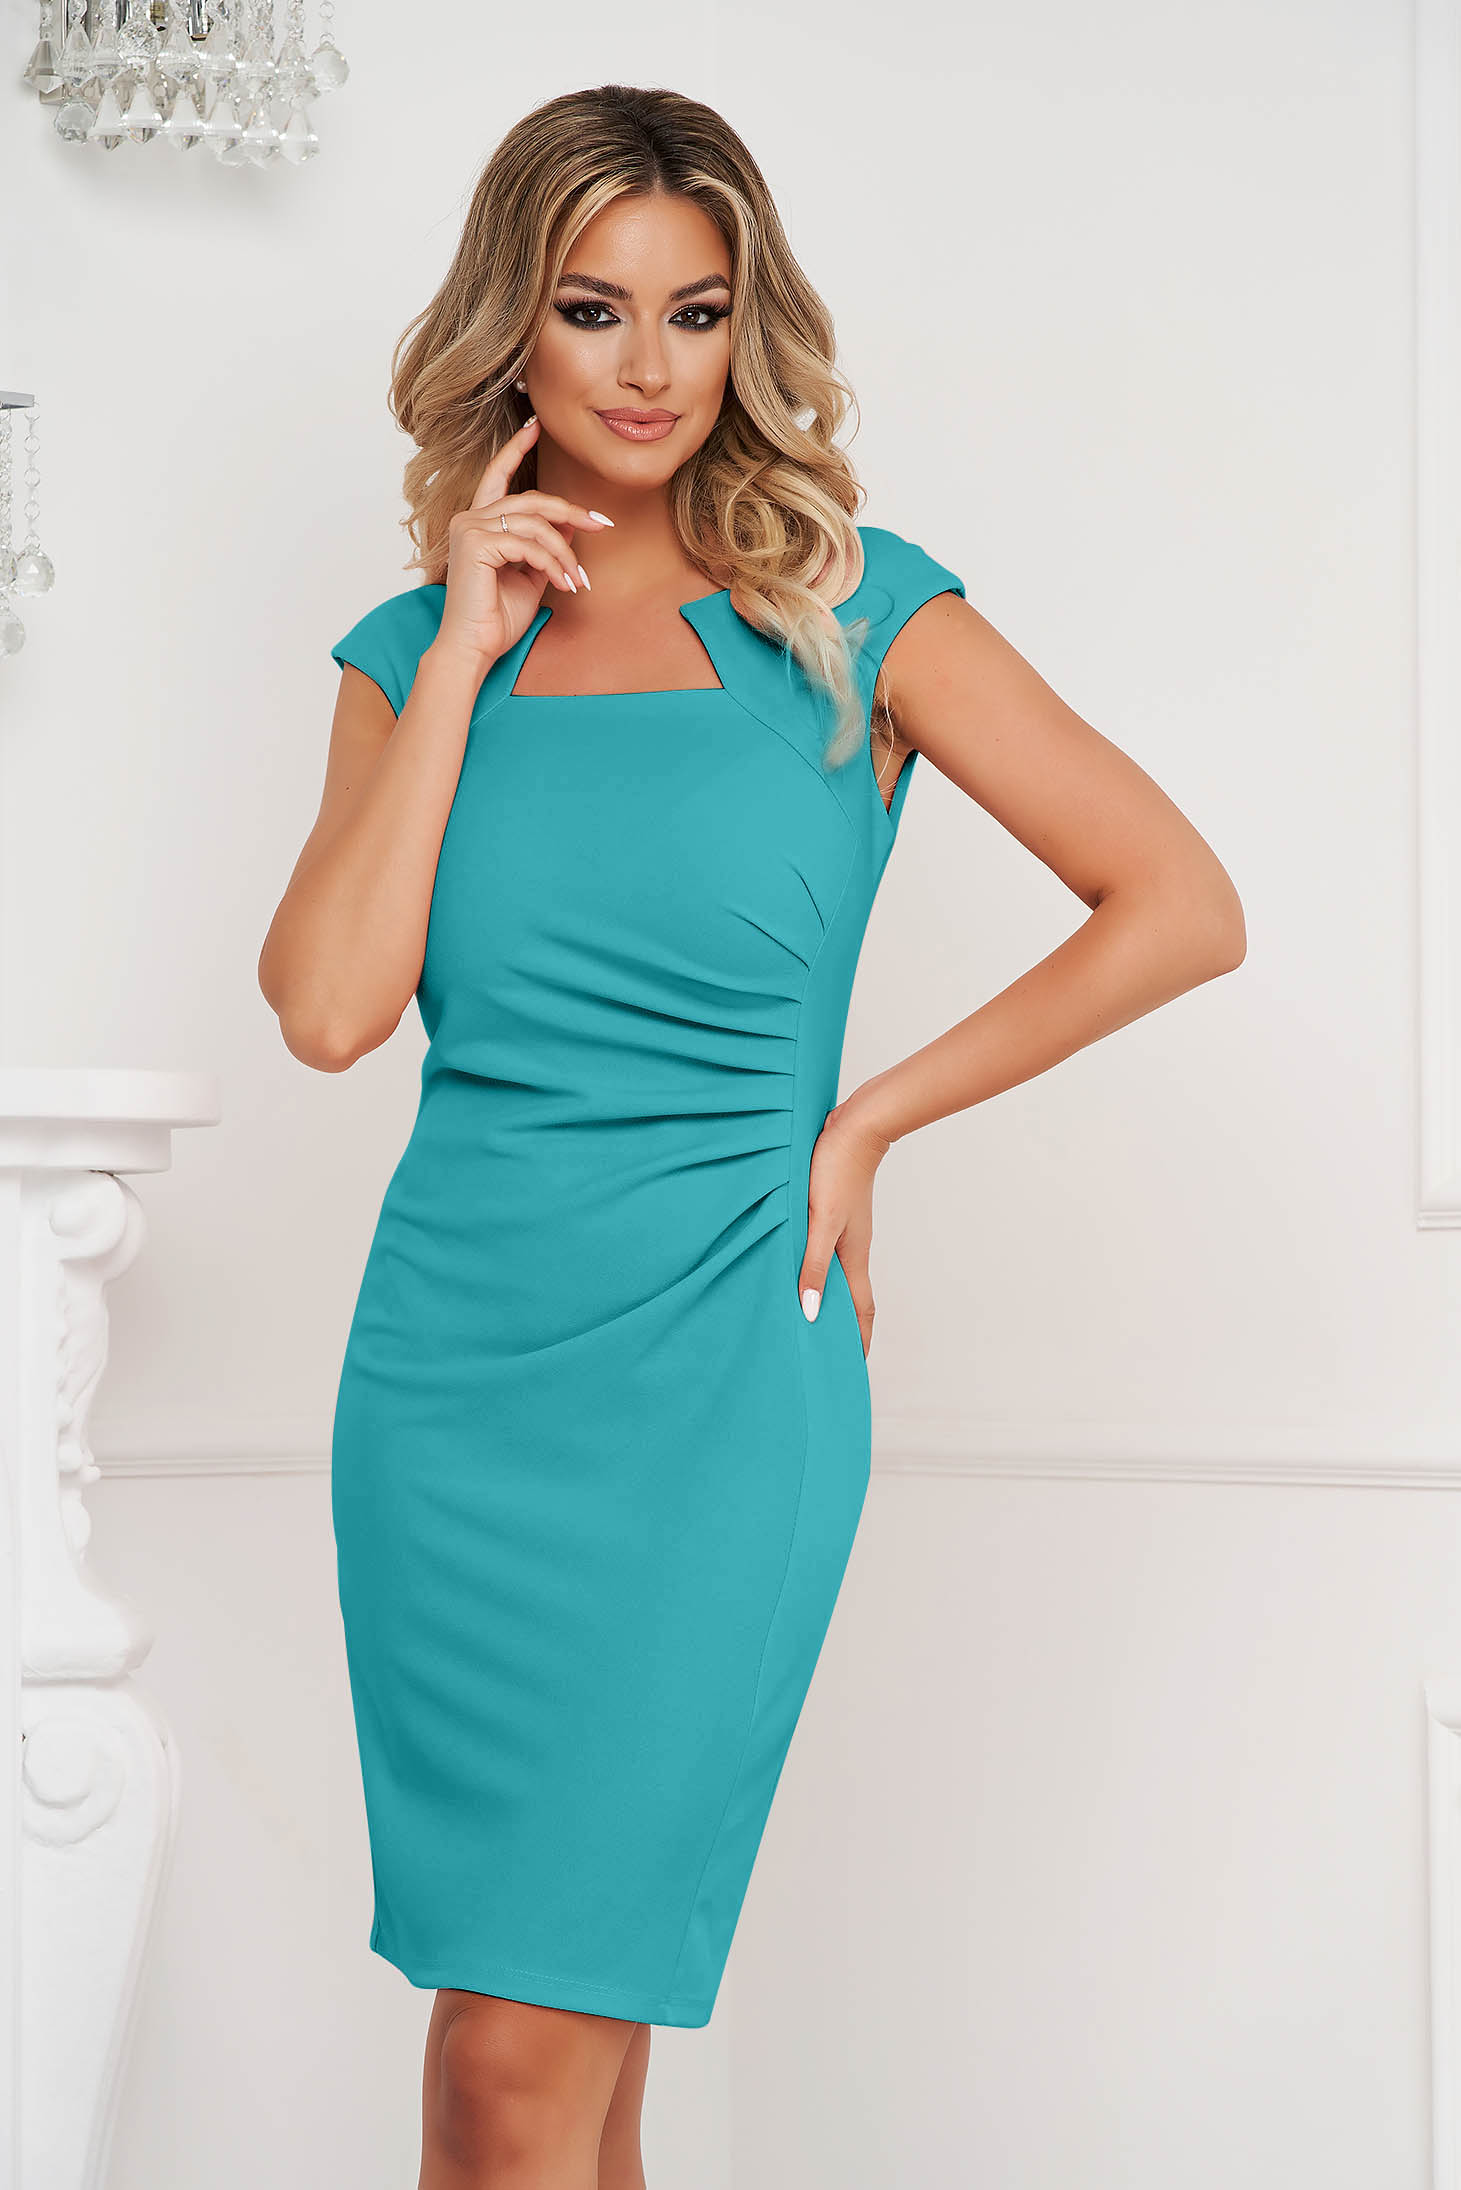 Turquoise dress office short cut pencil from elastic fabric short sleeves